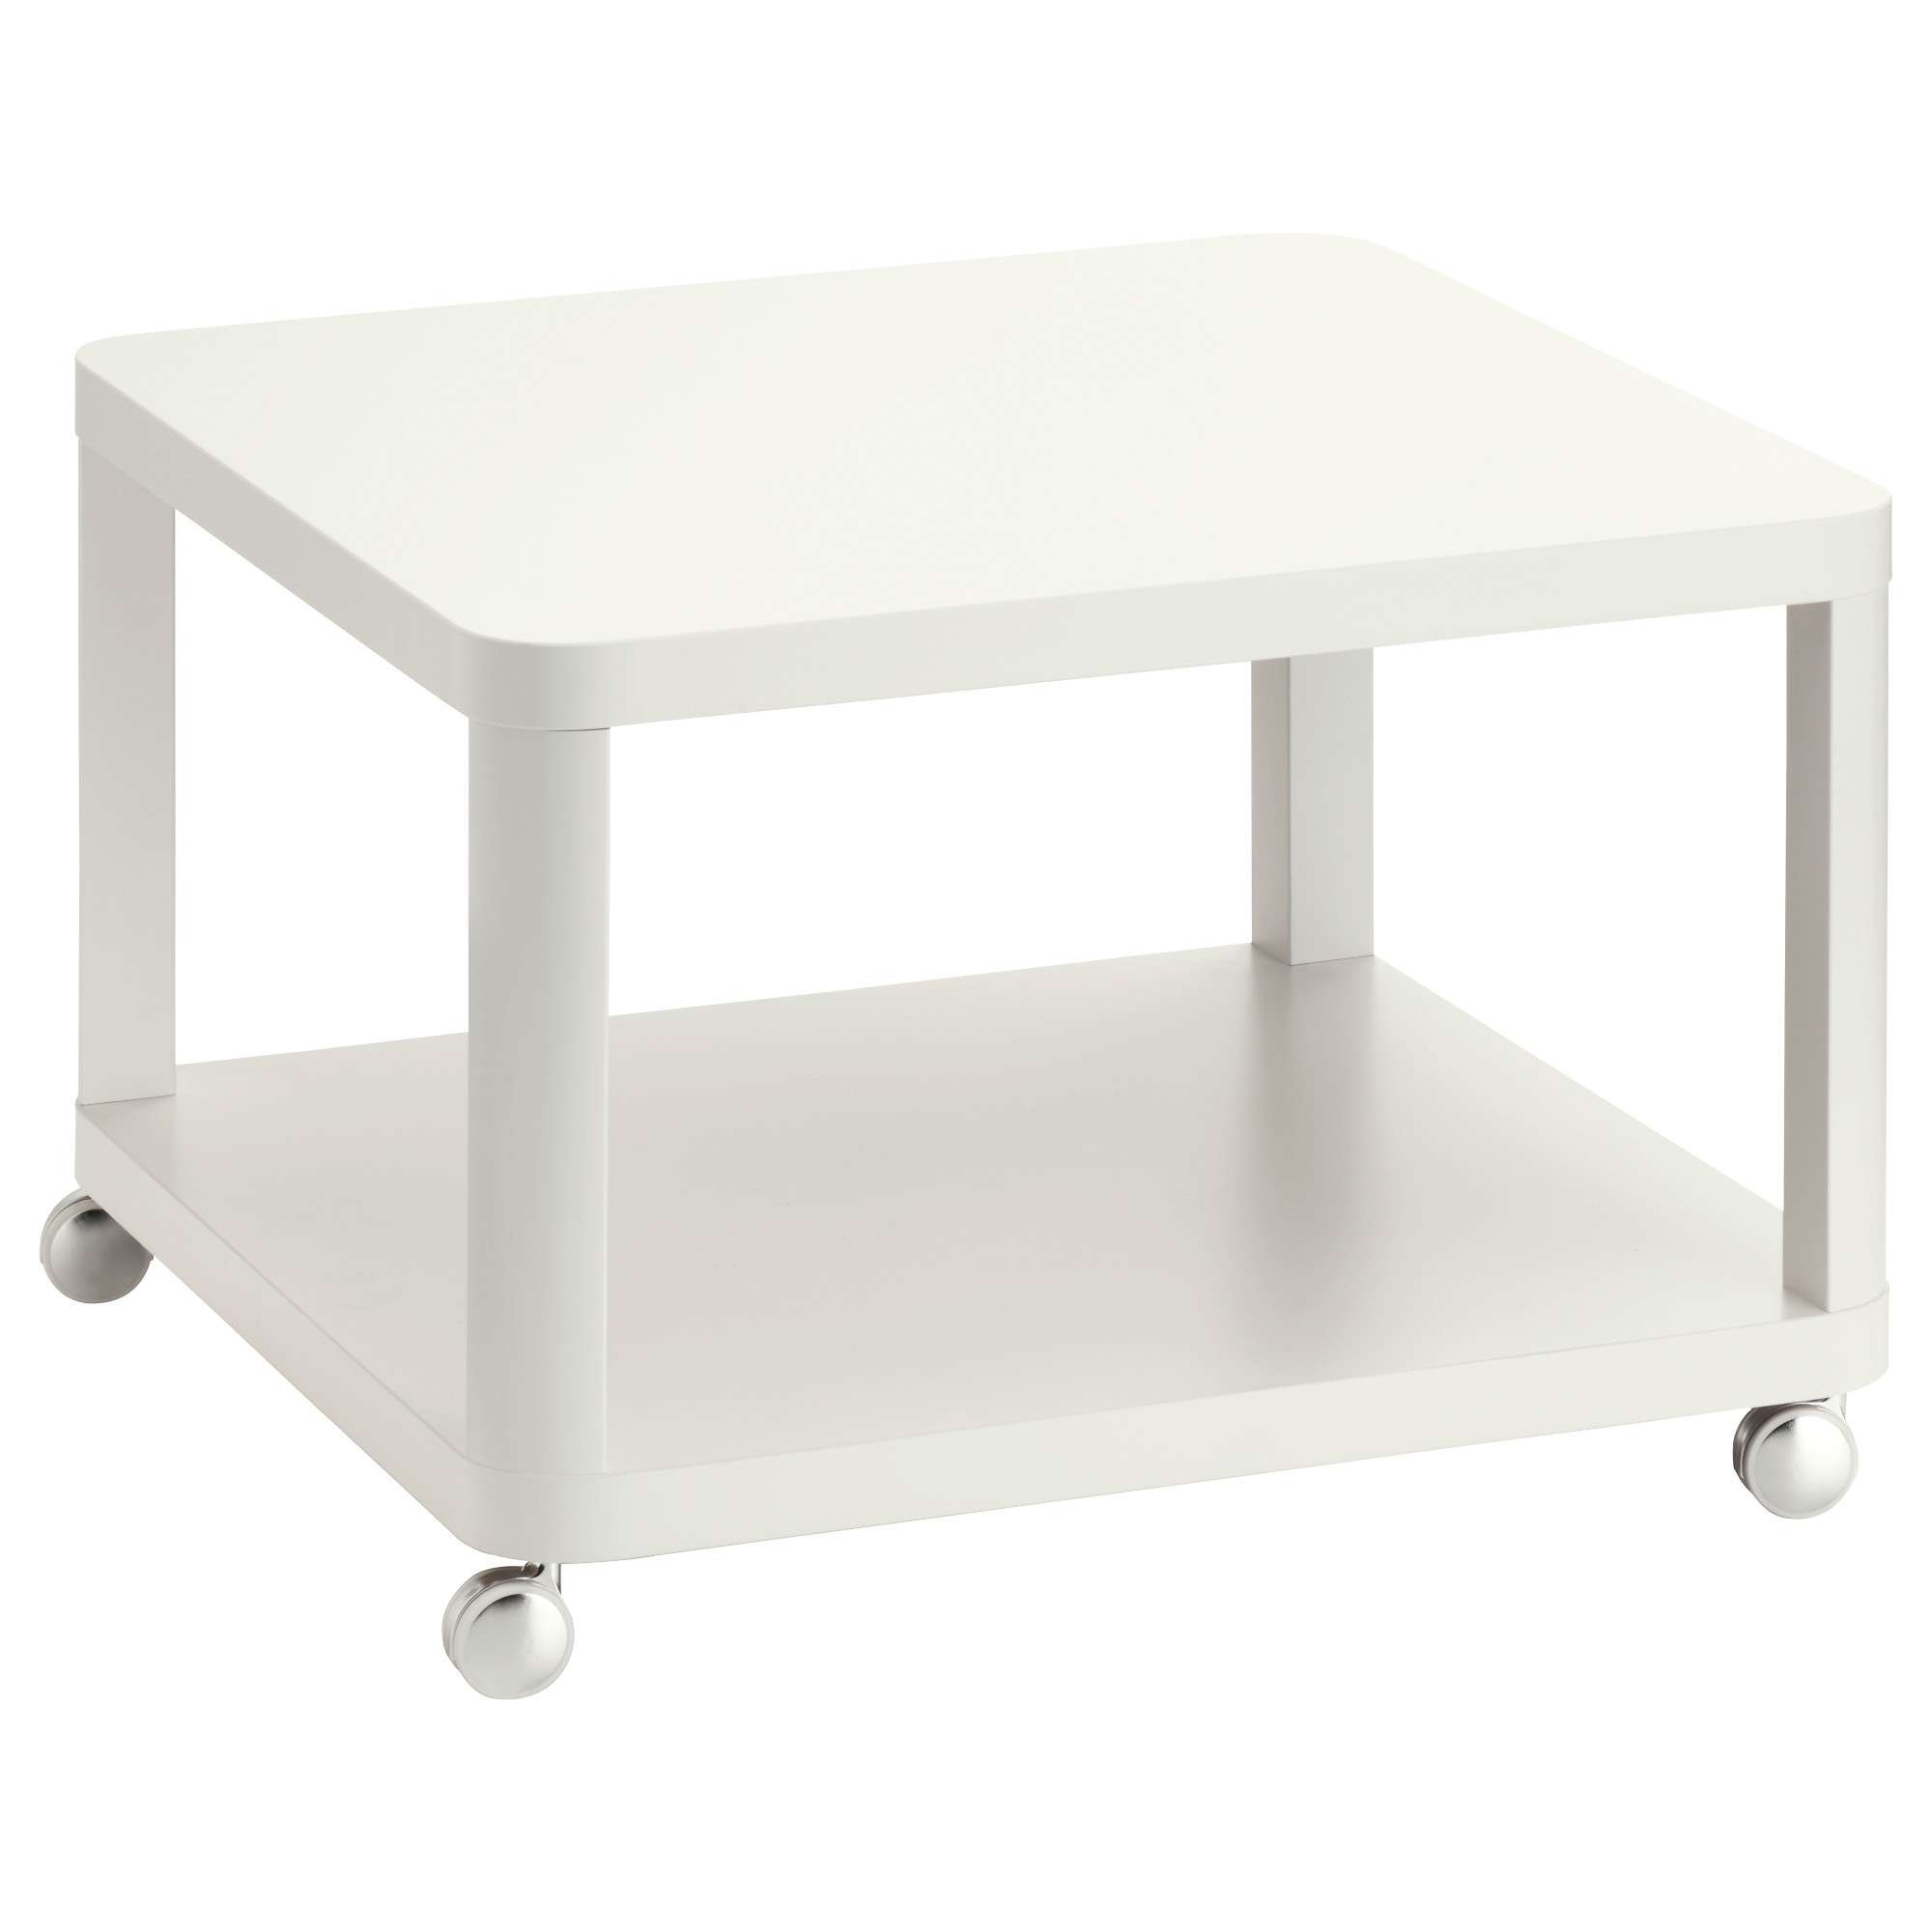 Coffee Tables & Console Tables – Ikea Regarding 2018 Glass Coffee Tables With Casters (View 10 of 20)